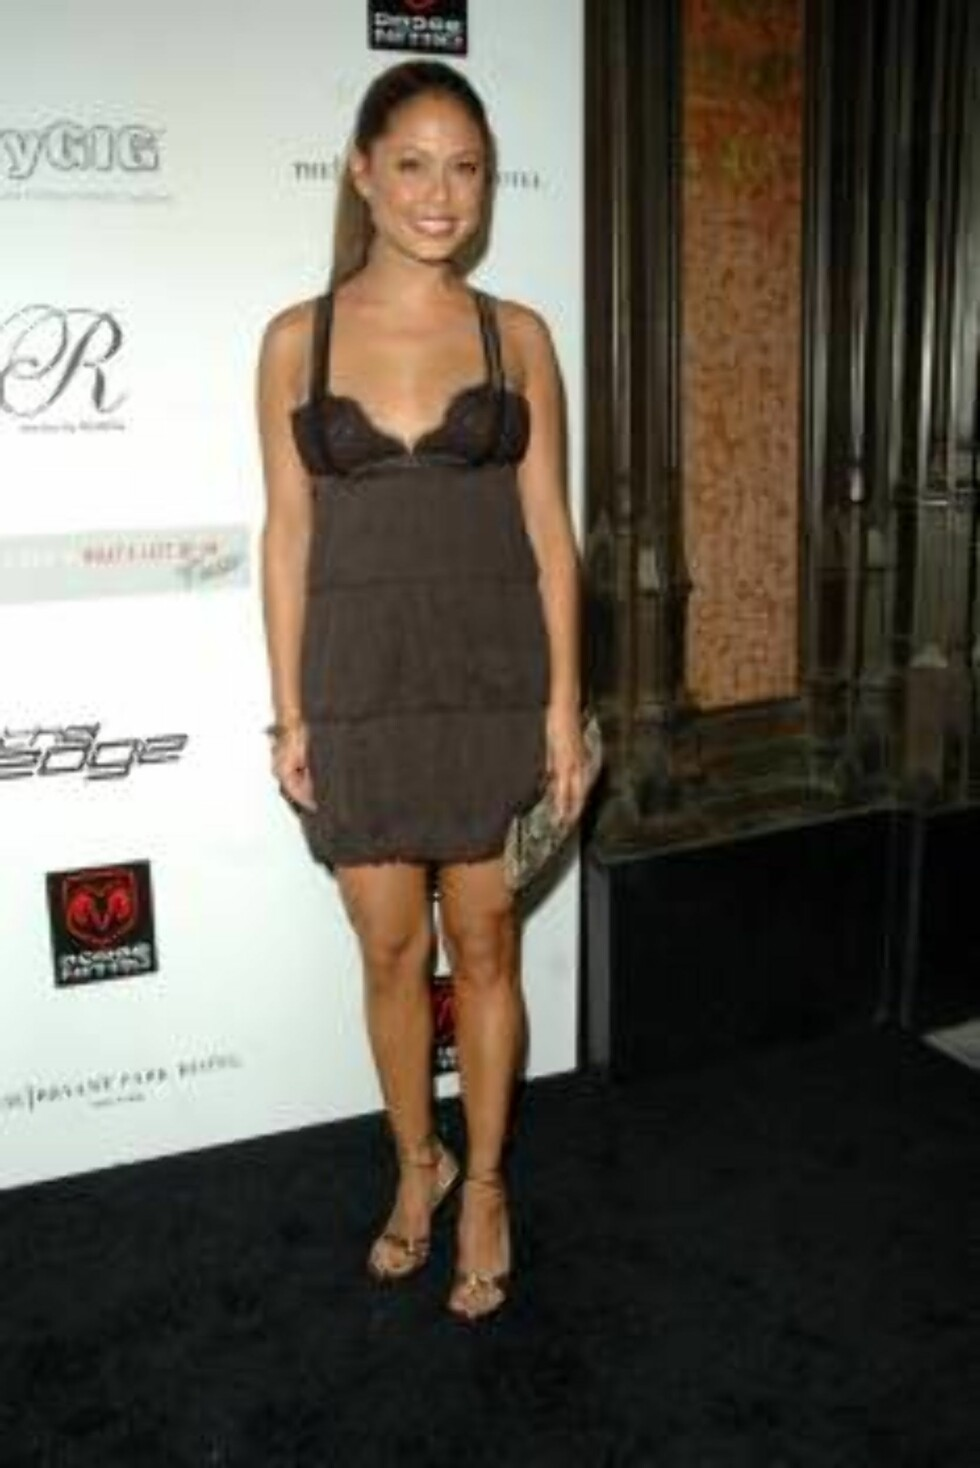 Vanessa Minnillo atNick Lachey's Official Pre-VMA Party held at the Cellar Bar in the Bryant Park HotelNew York City, USA-30.08.06Credit: WENN Foto: WENN